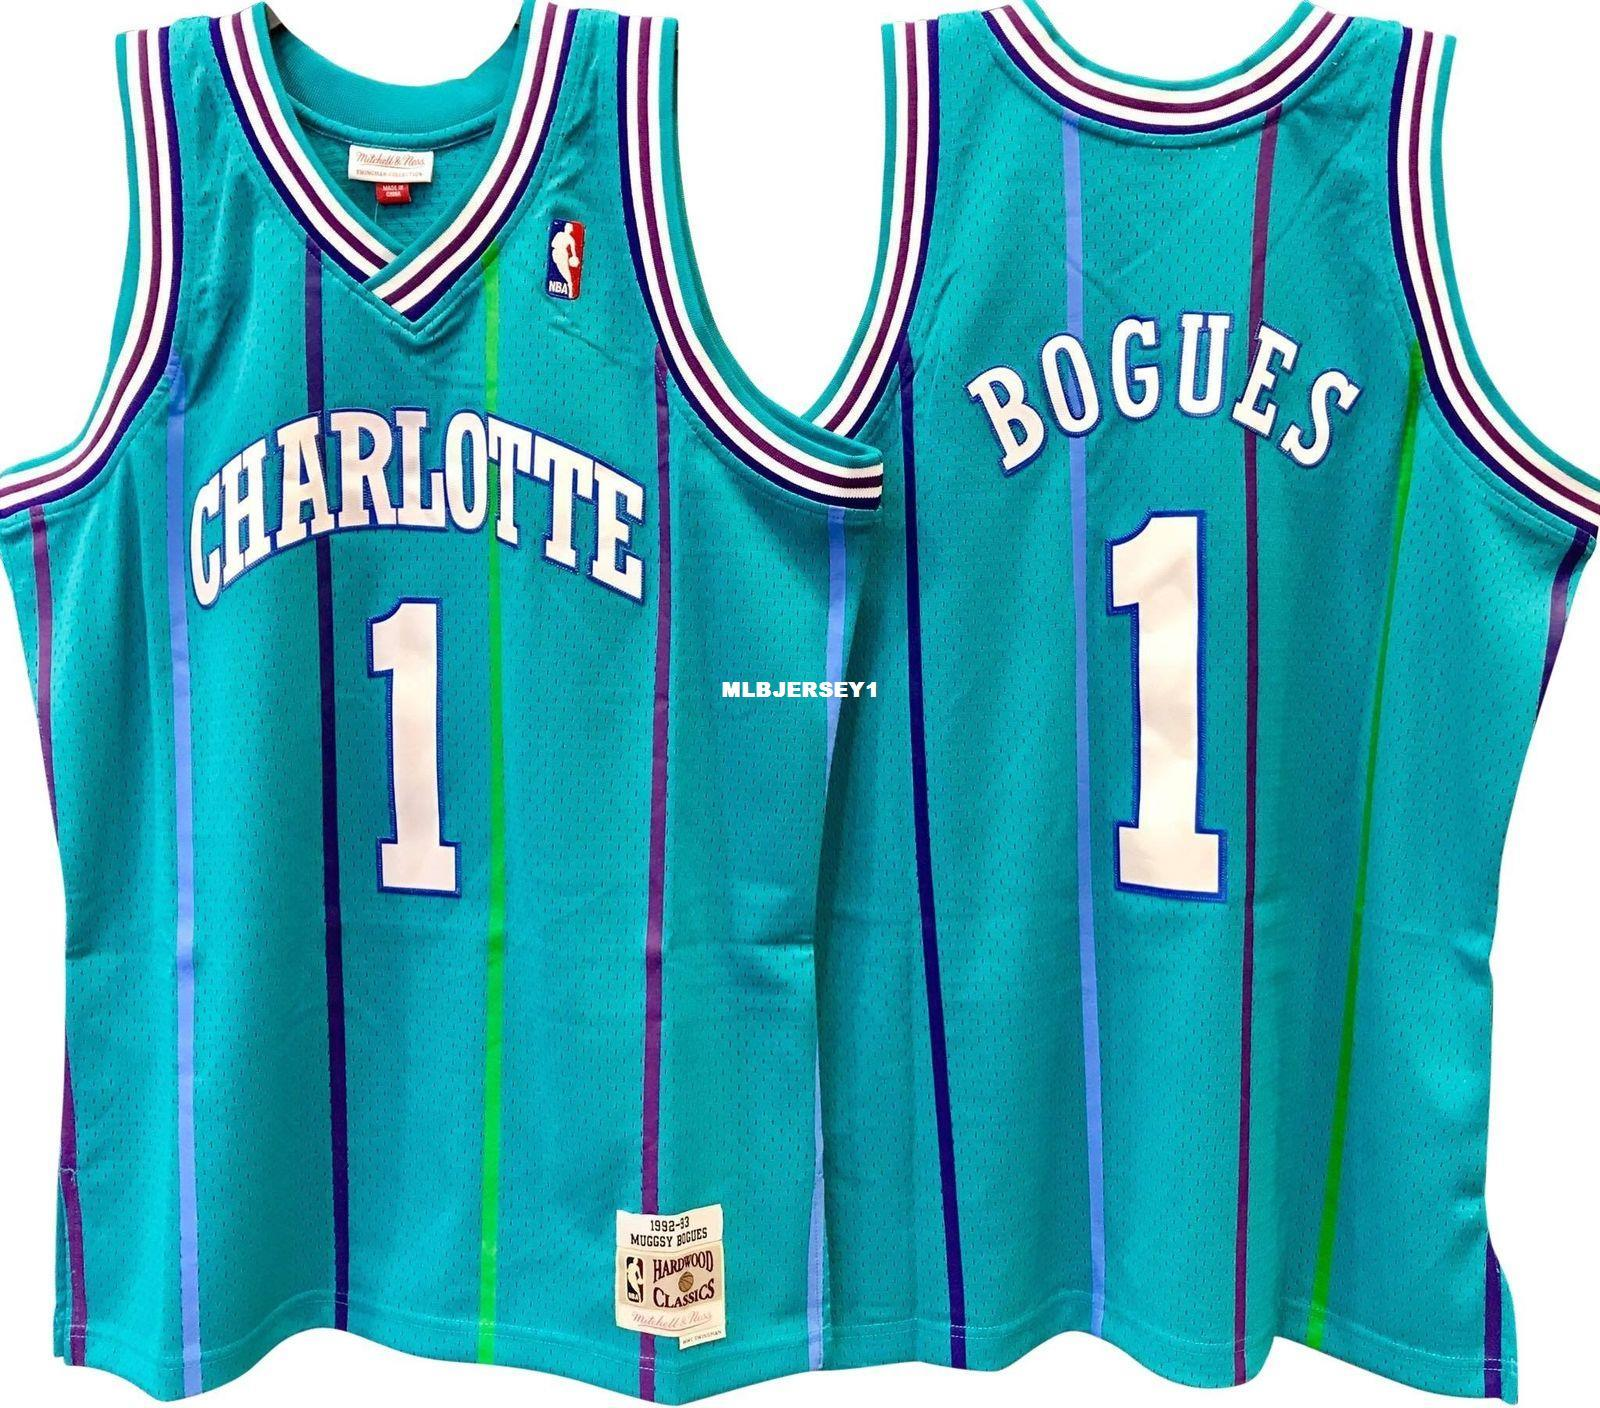 size 40 462a4 b1a03 2019 MUGGSY BOGUES #1 Green Sewn HORSewn High Quality Retro Vintage Top  JERSEY Mens Vest Size XS 6XL Stitched Basketball Jerseys Ncaa From  Mlbjersey1, ...